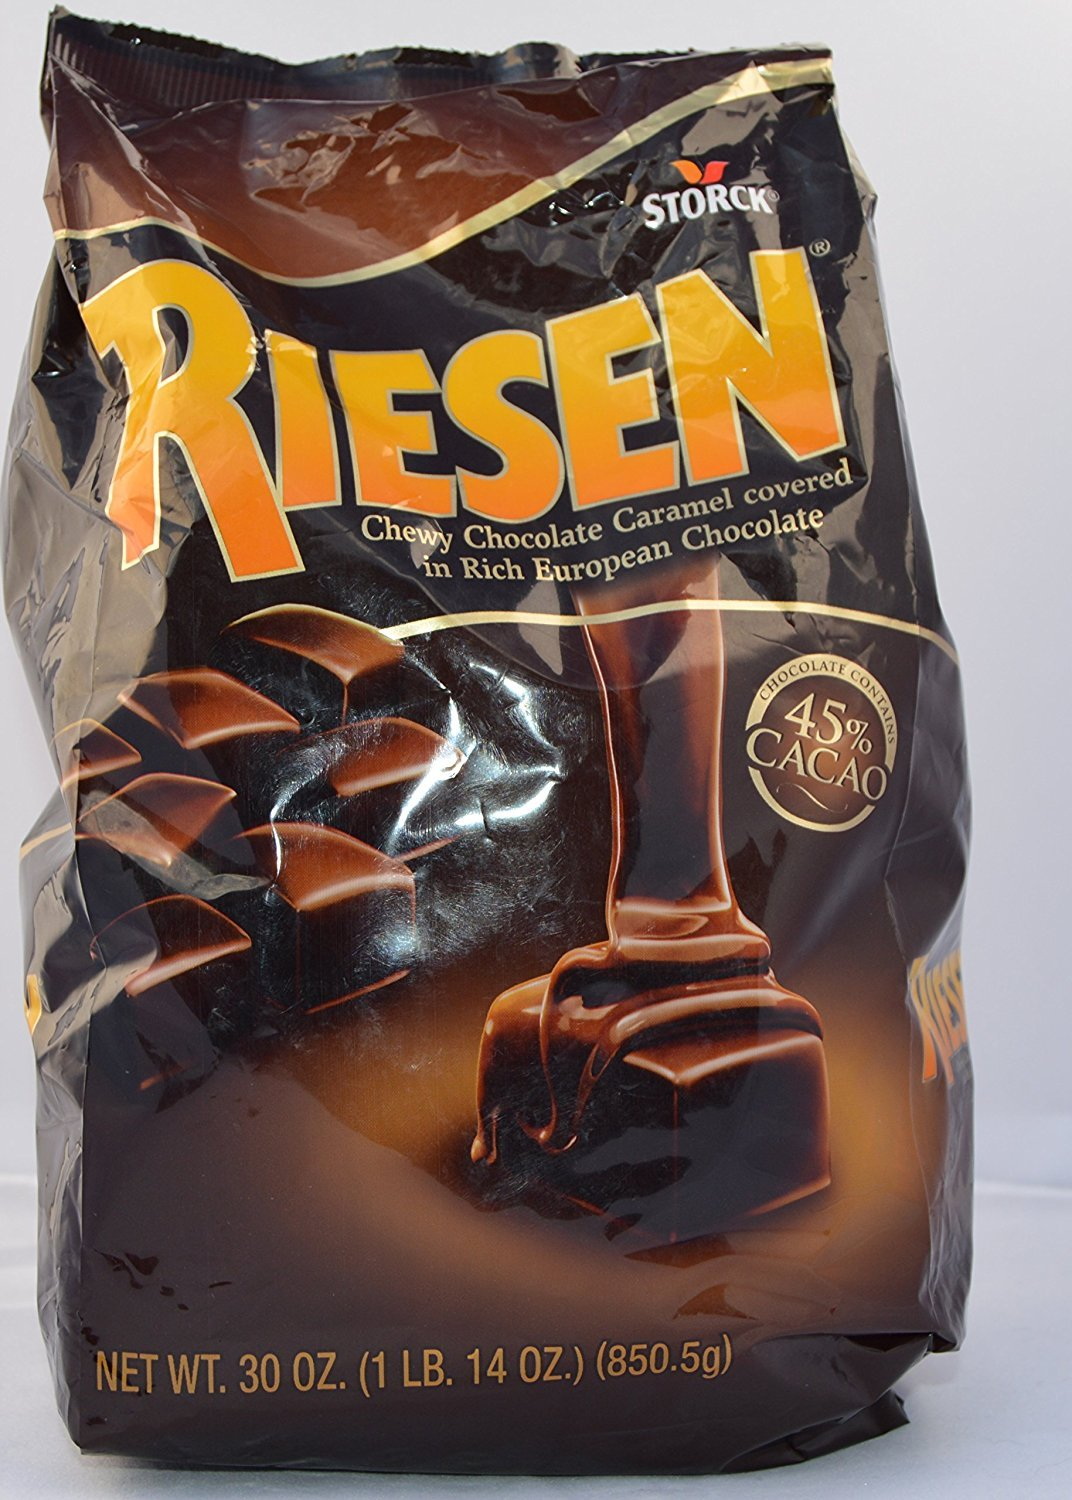 Riesen Chewy Chocolate Caramel Covered in Rich European Chocolate, 30 Oz (2 Count)